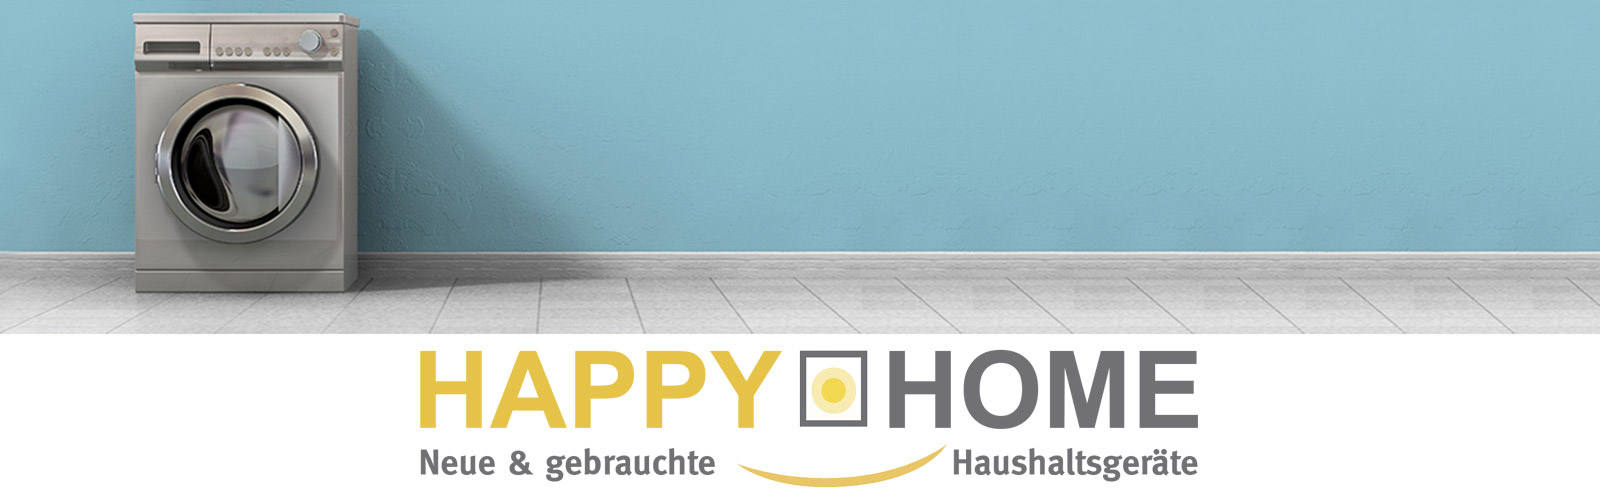 happy_home_koeln_01b